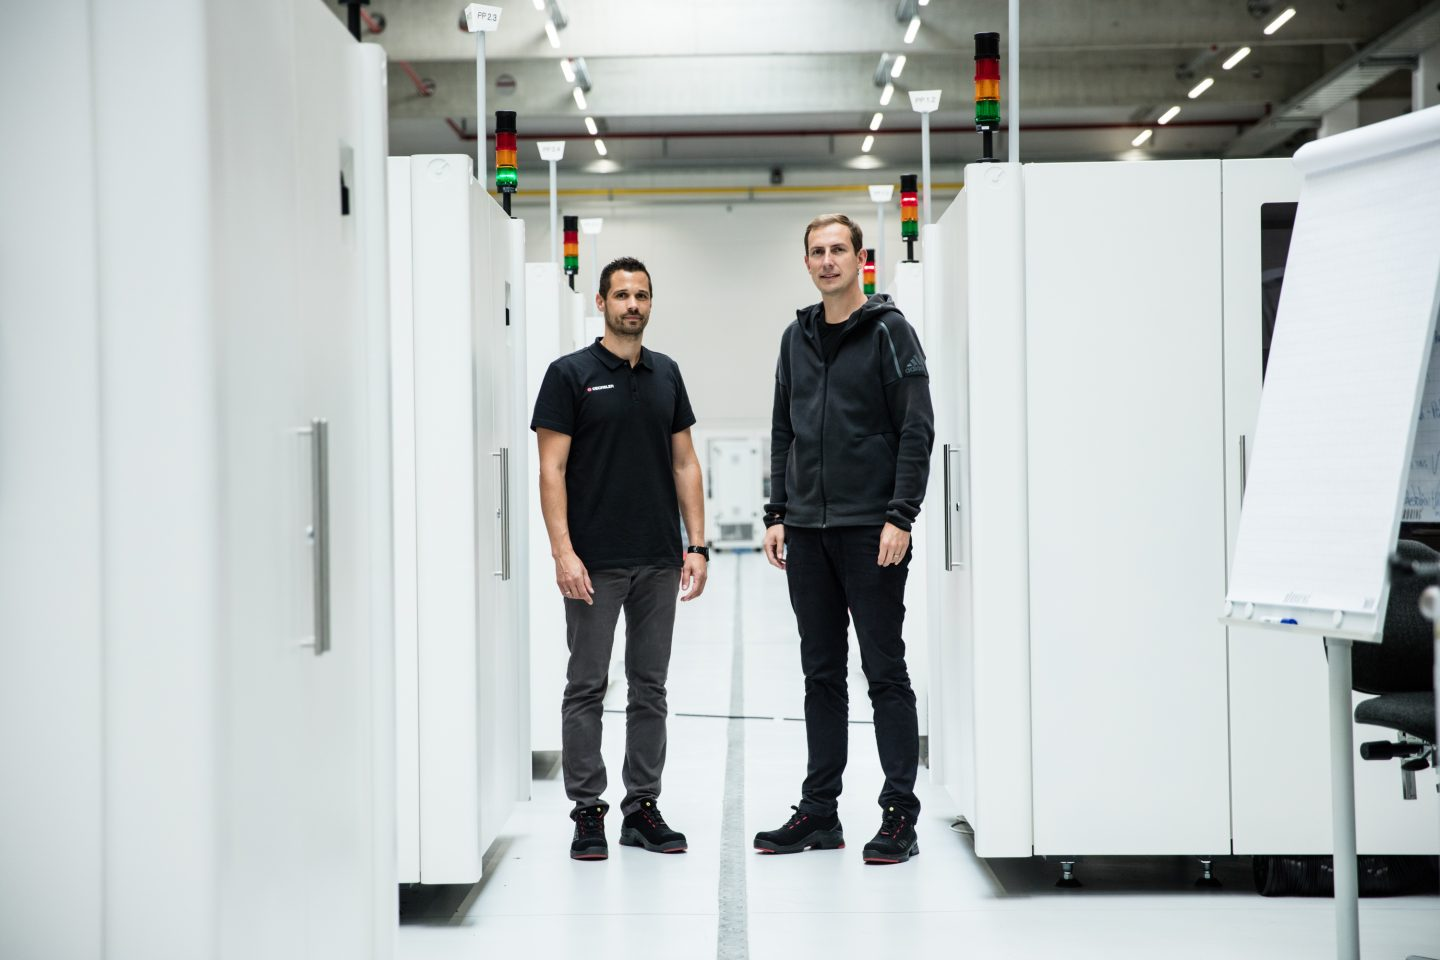 Engineers standing between machines in a factory, adidas-SPEEDFACTORY-OECHSLER-interview-GamePlanA-machine